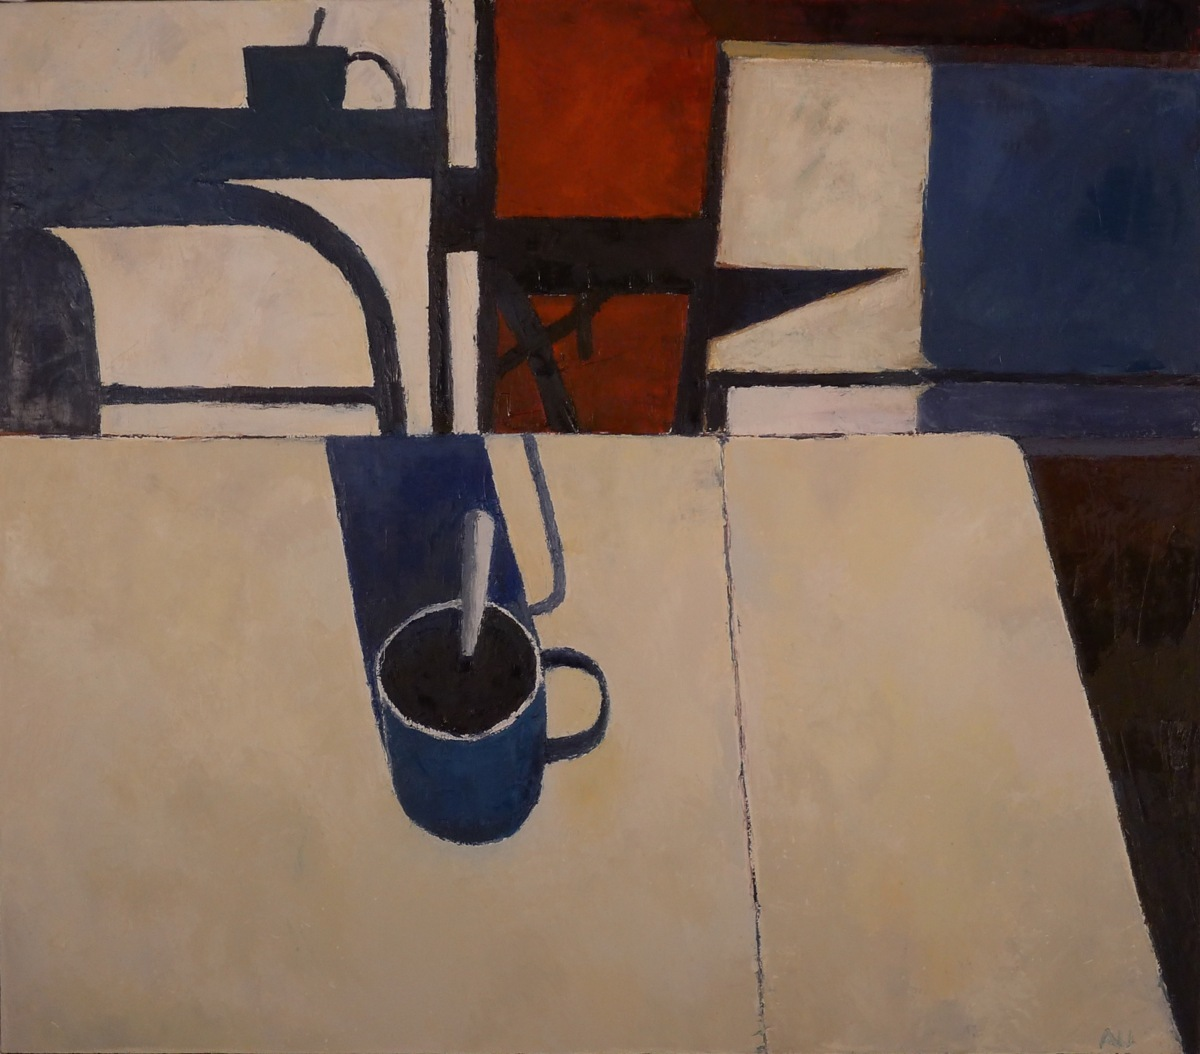 Still life with blue mug and shadows (large view)